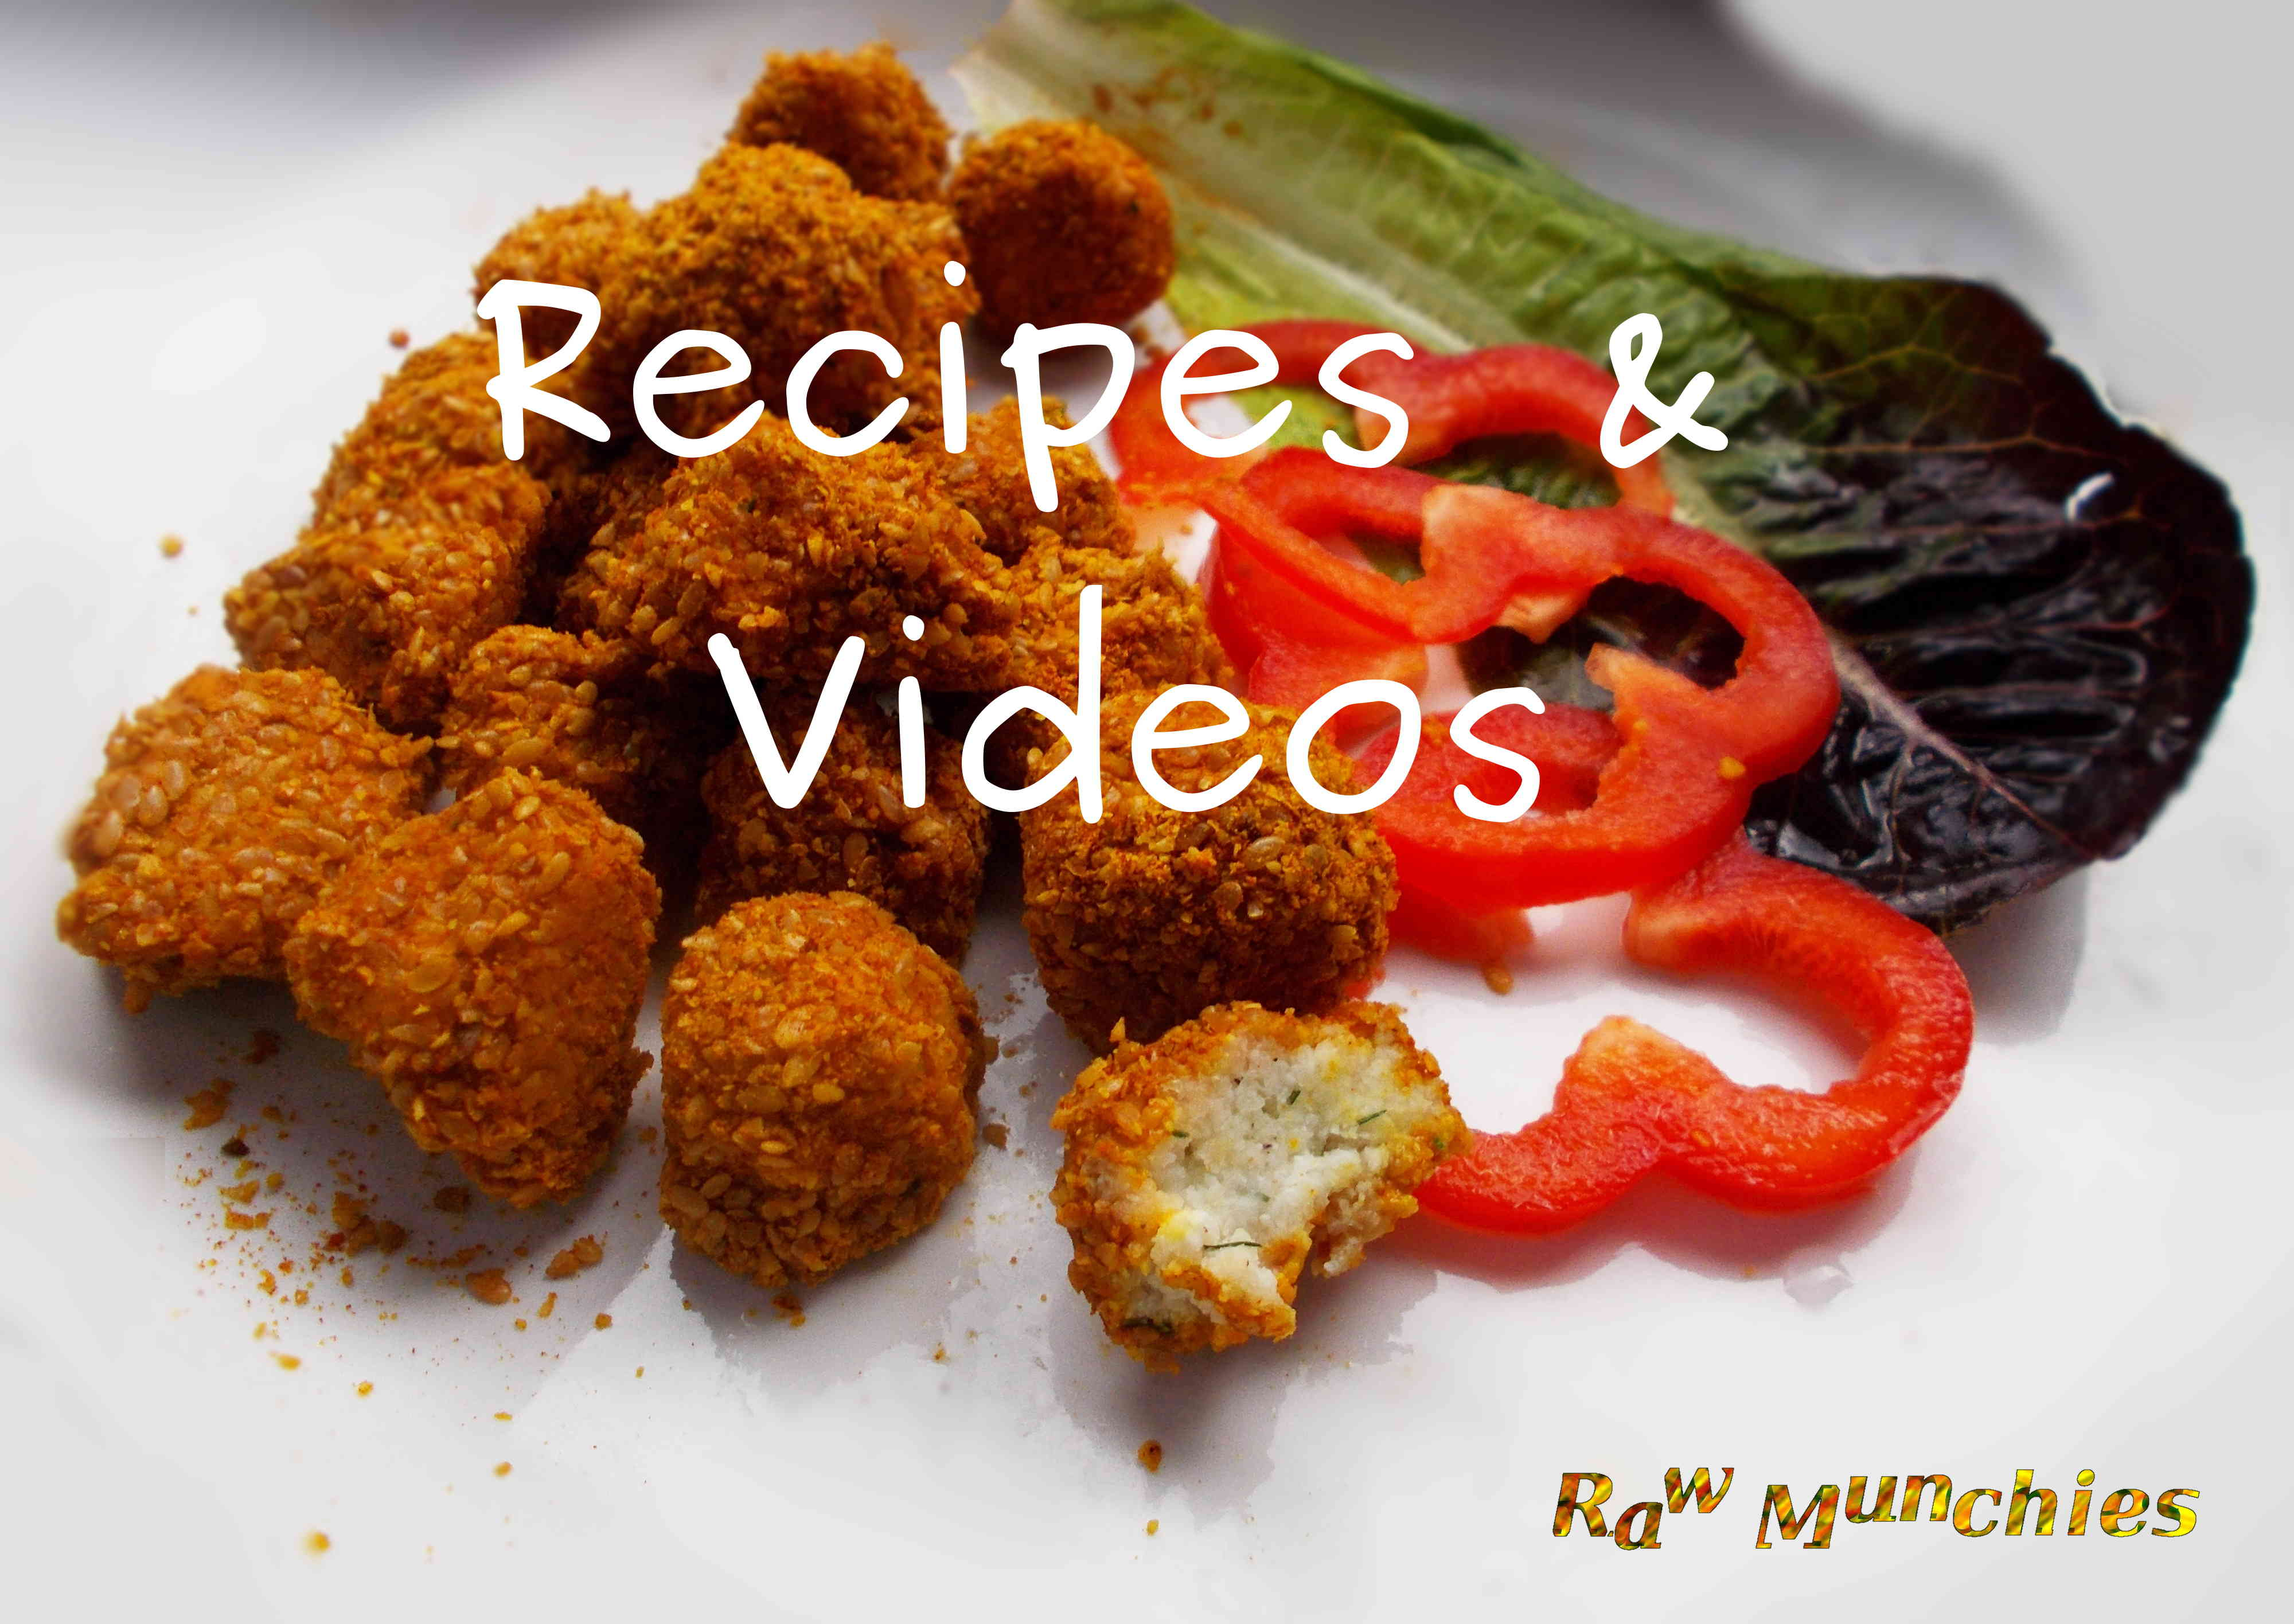 Cauliflower Balls Video link: https://youtu.be/KymRCOraTjI #Raw #Vegan #Youtube #Video #Rawmunchies #rawvegan #youtubevideo #youtuberecipe